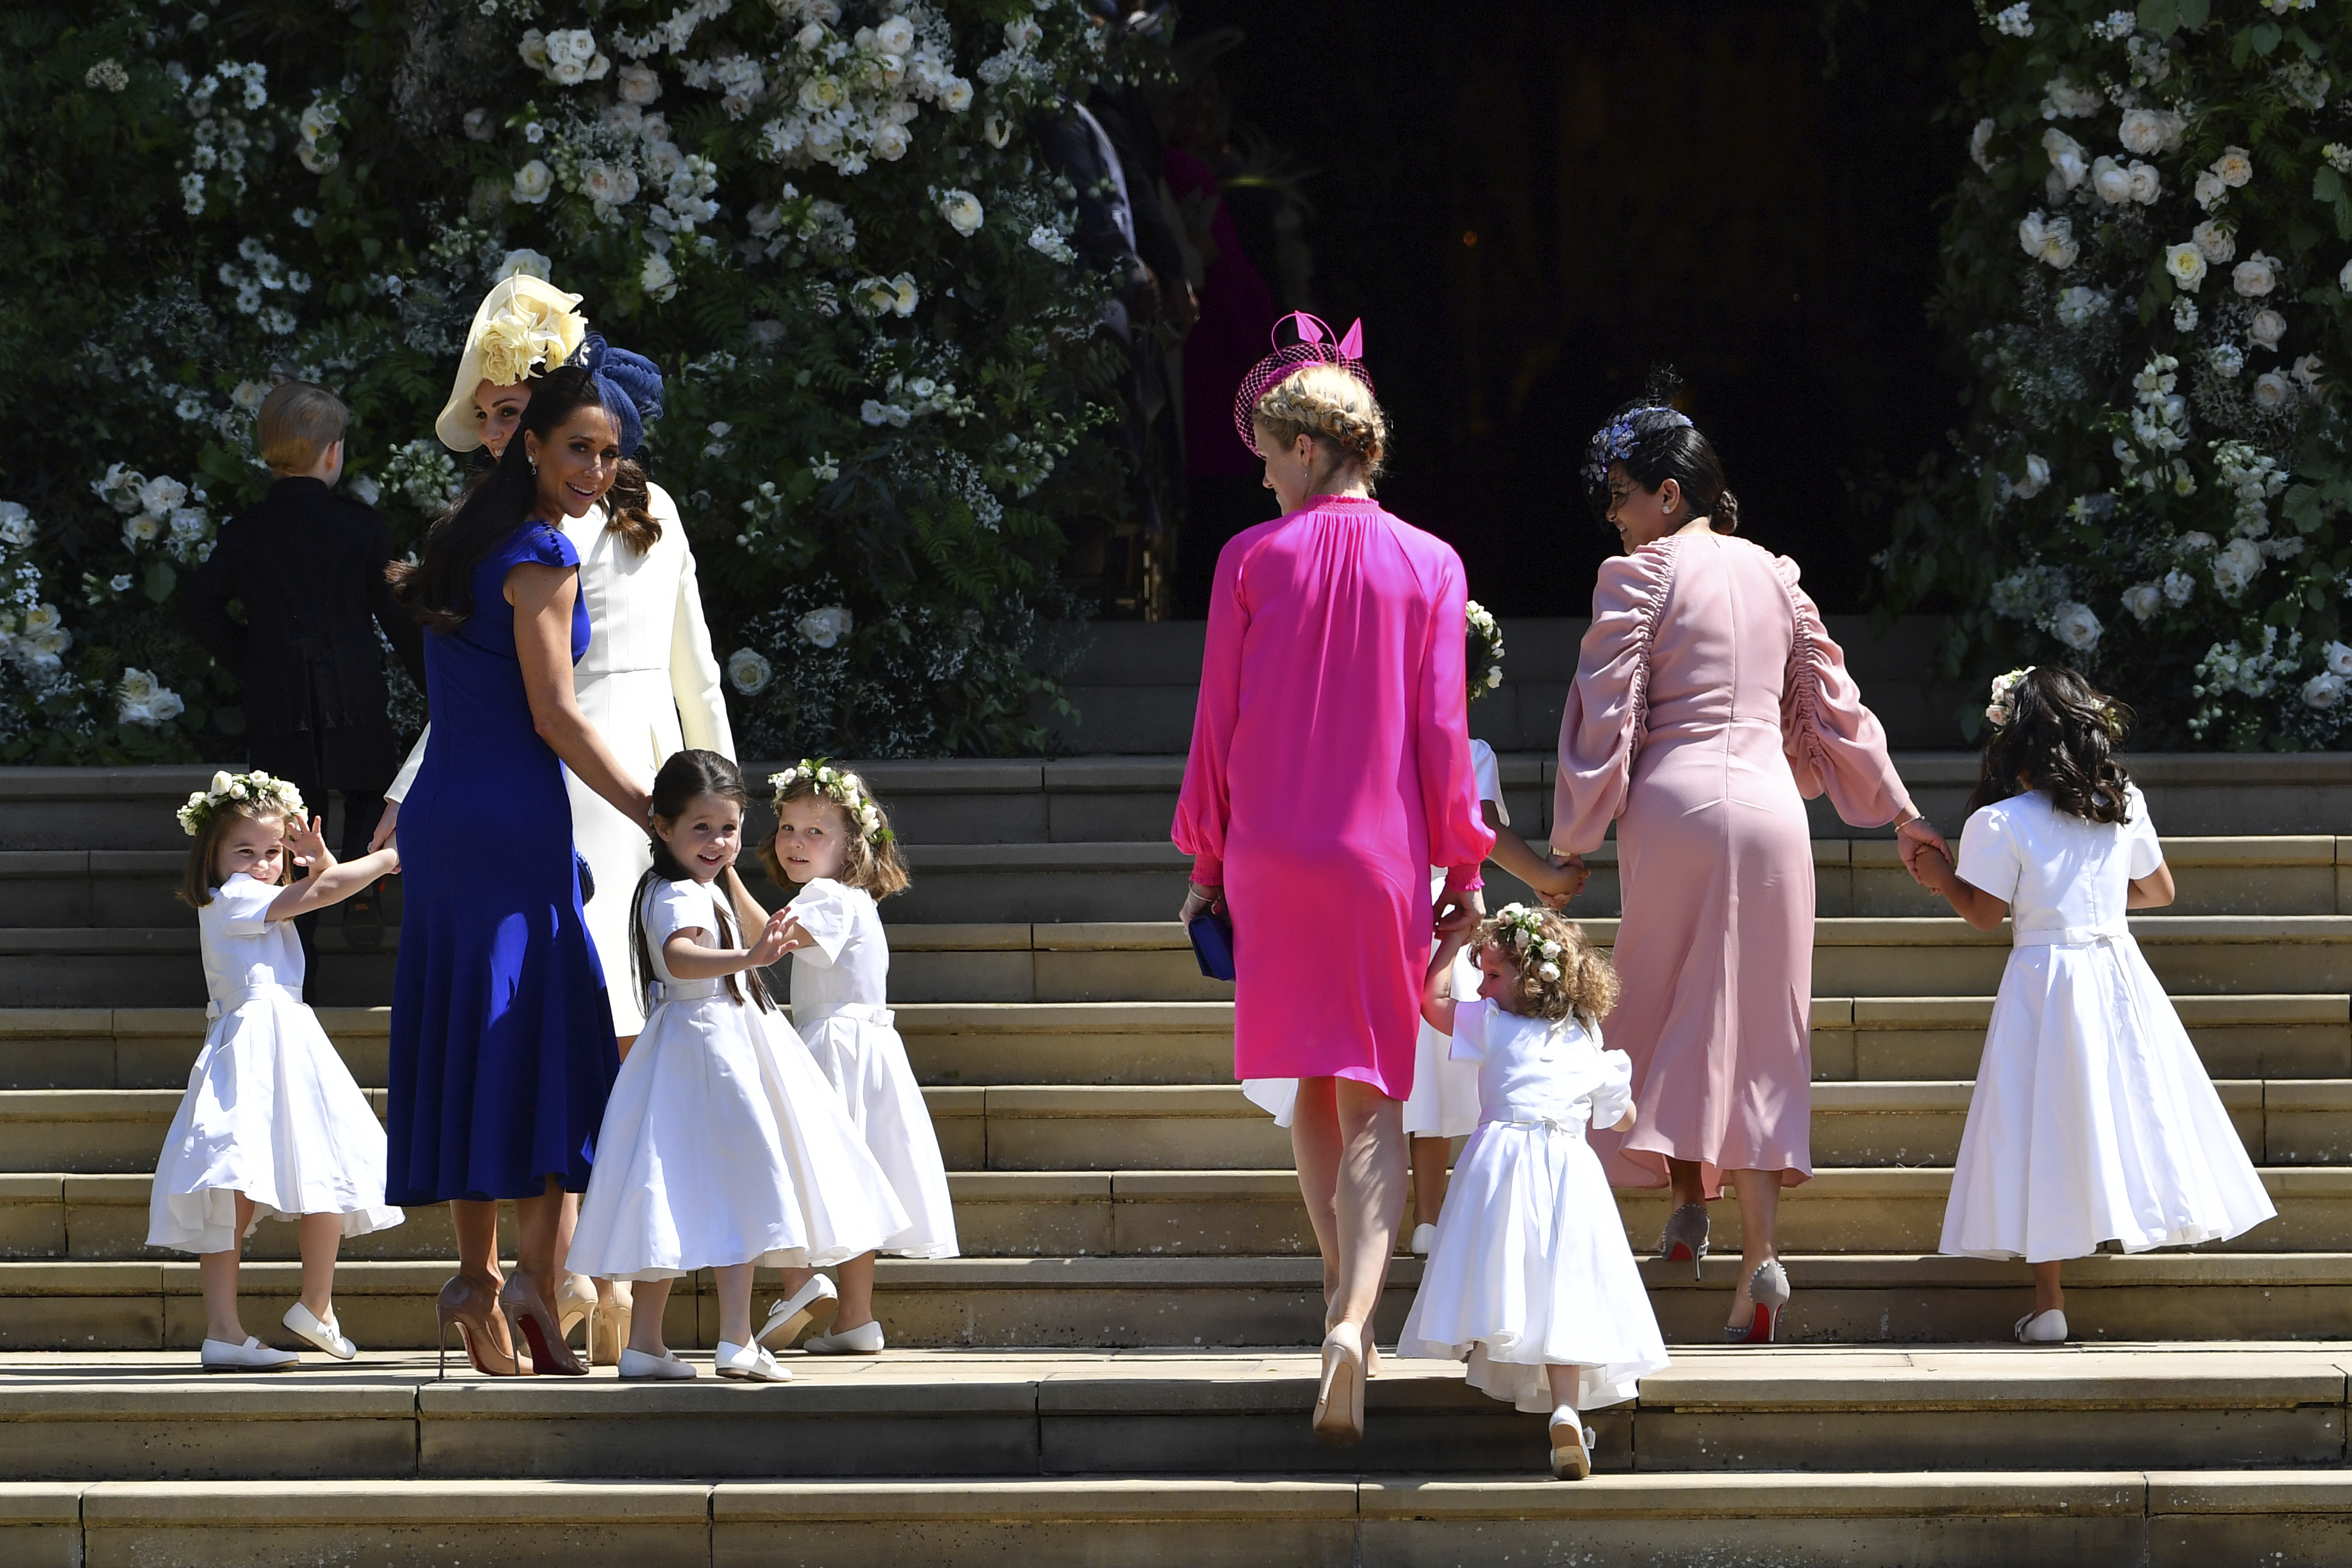 Kate, Duchess of Cambridge, third left, and Meghan Markle´s friend, Canadian fashion stylist Jessica Mulroney, second left, holds bridesmaids hands as they arrive for the wedding ceremony of Prince Harry and Meghan Markle at St. George´s Chapel in Windsor Castle in Windsor, near London, England, Saturday, May 19, 2018. (Ben Stansall/pool photo via AP)